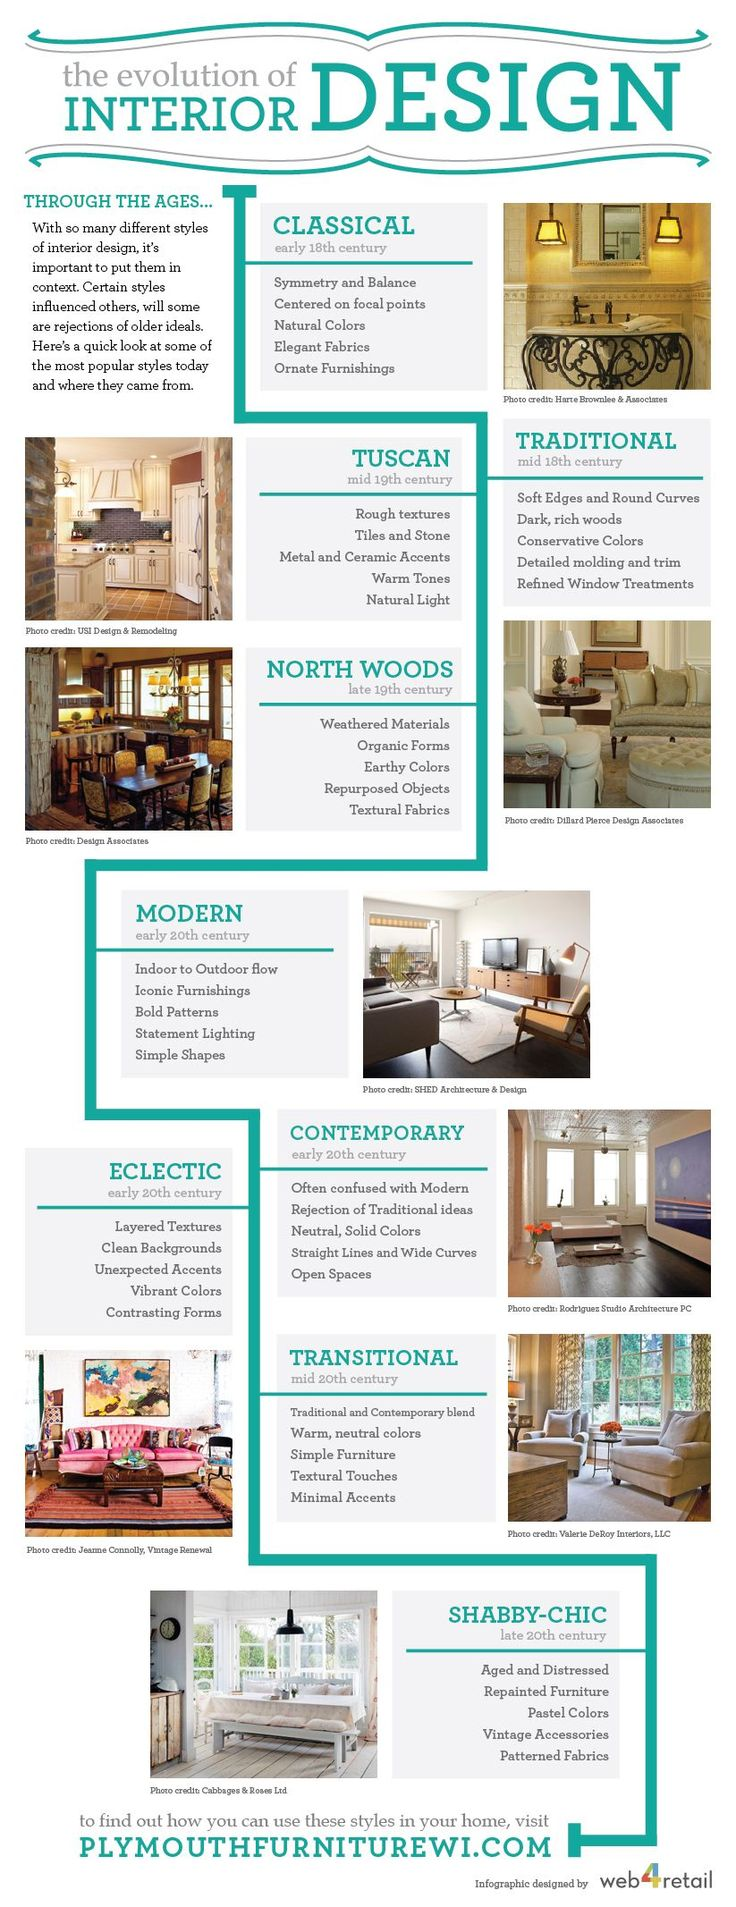 Plymouth Furniture - Design Styles